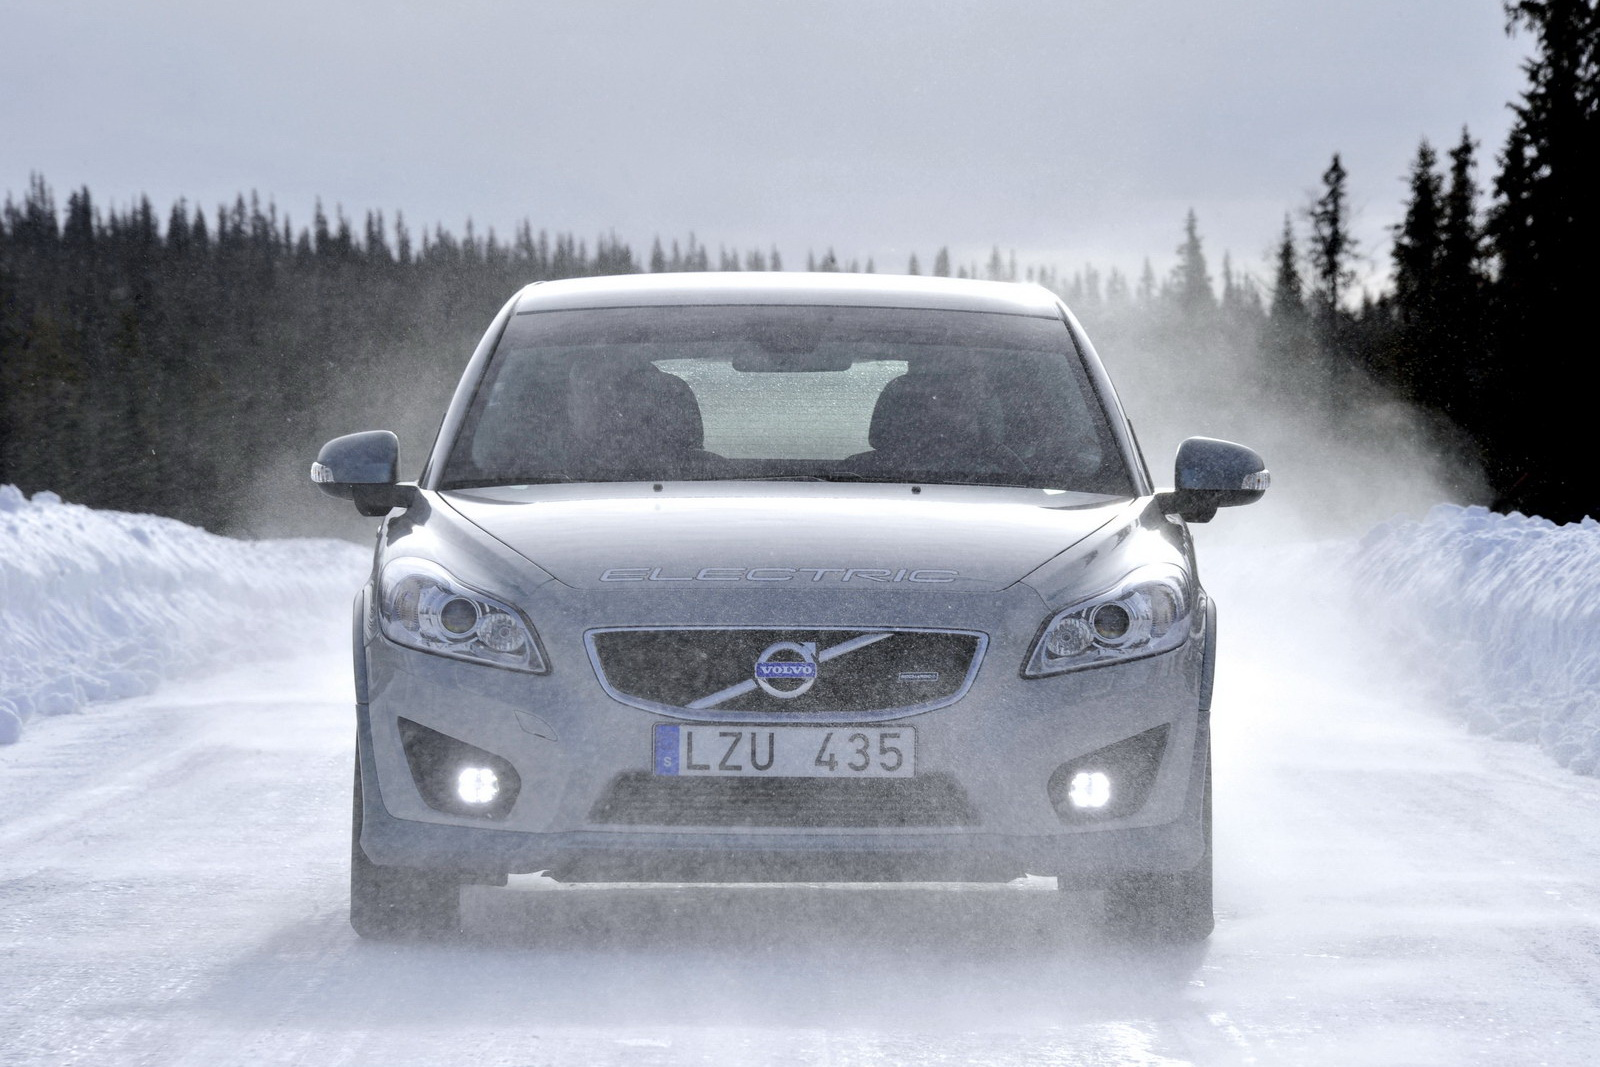 Volvo C30 Electric Powered Vehicle Will Be More Dynamic And Energy Efficient Machinespider Com